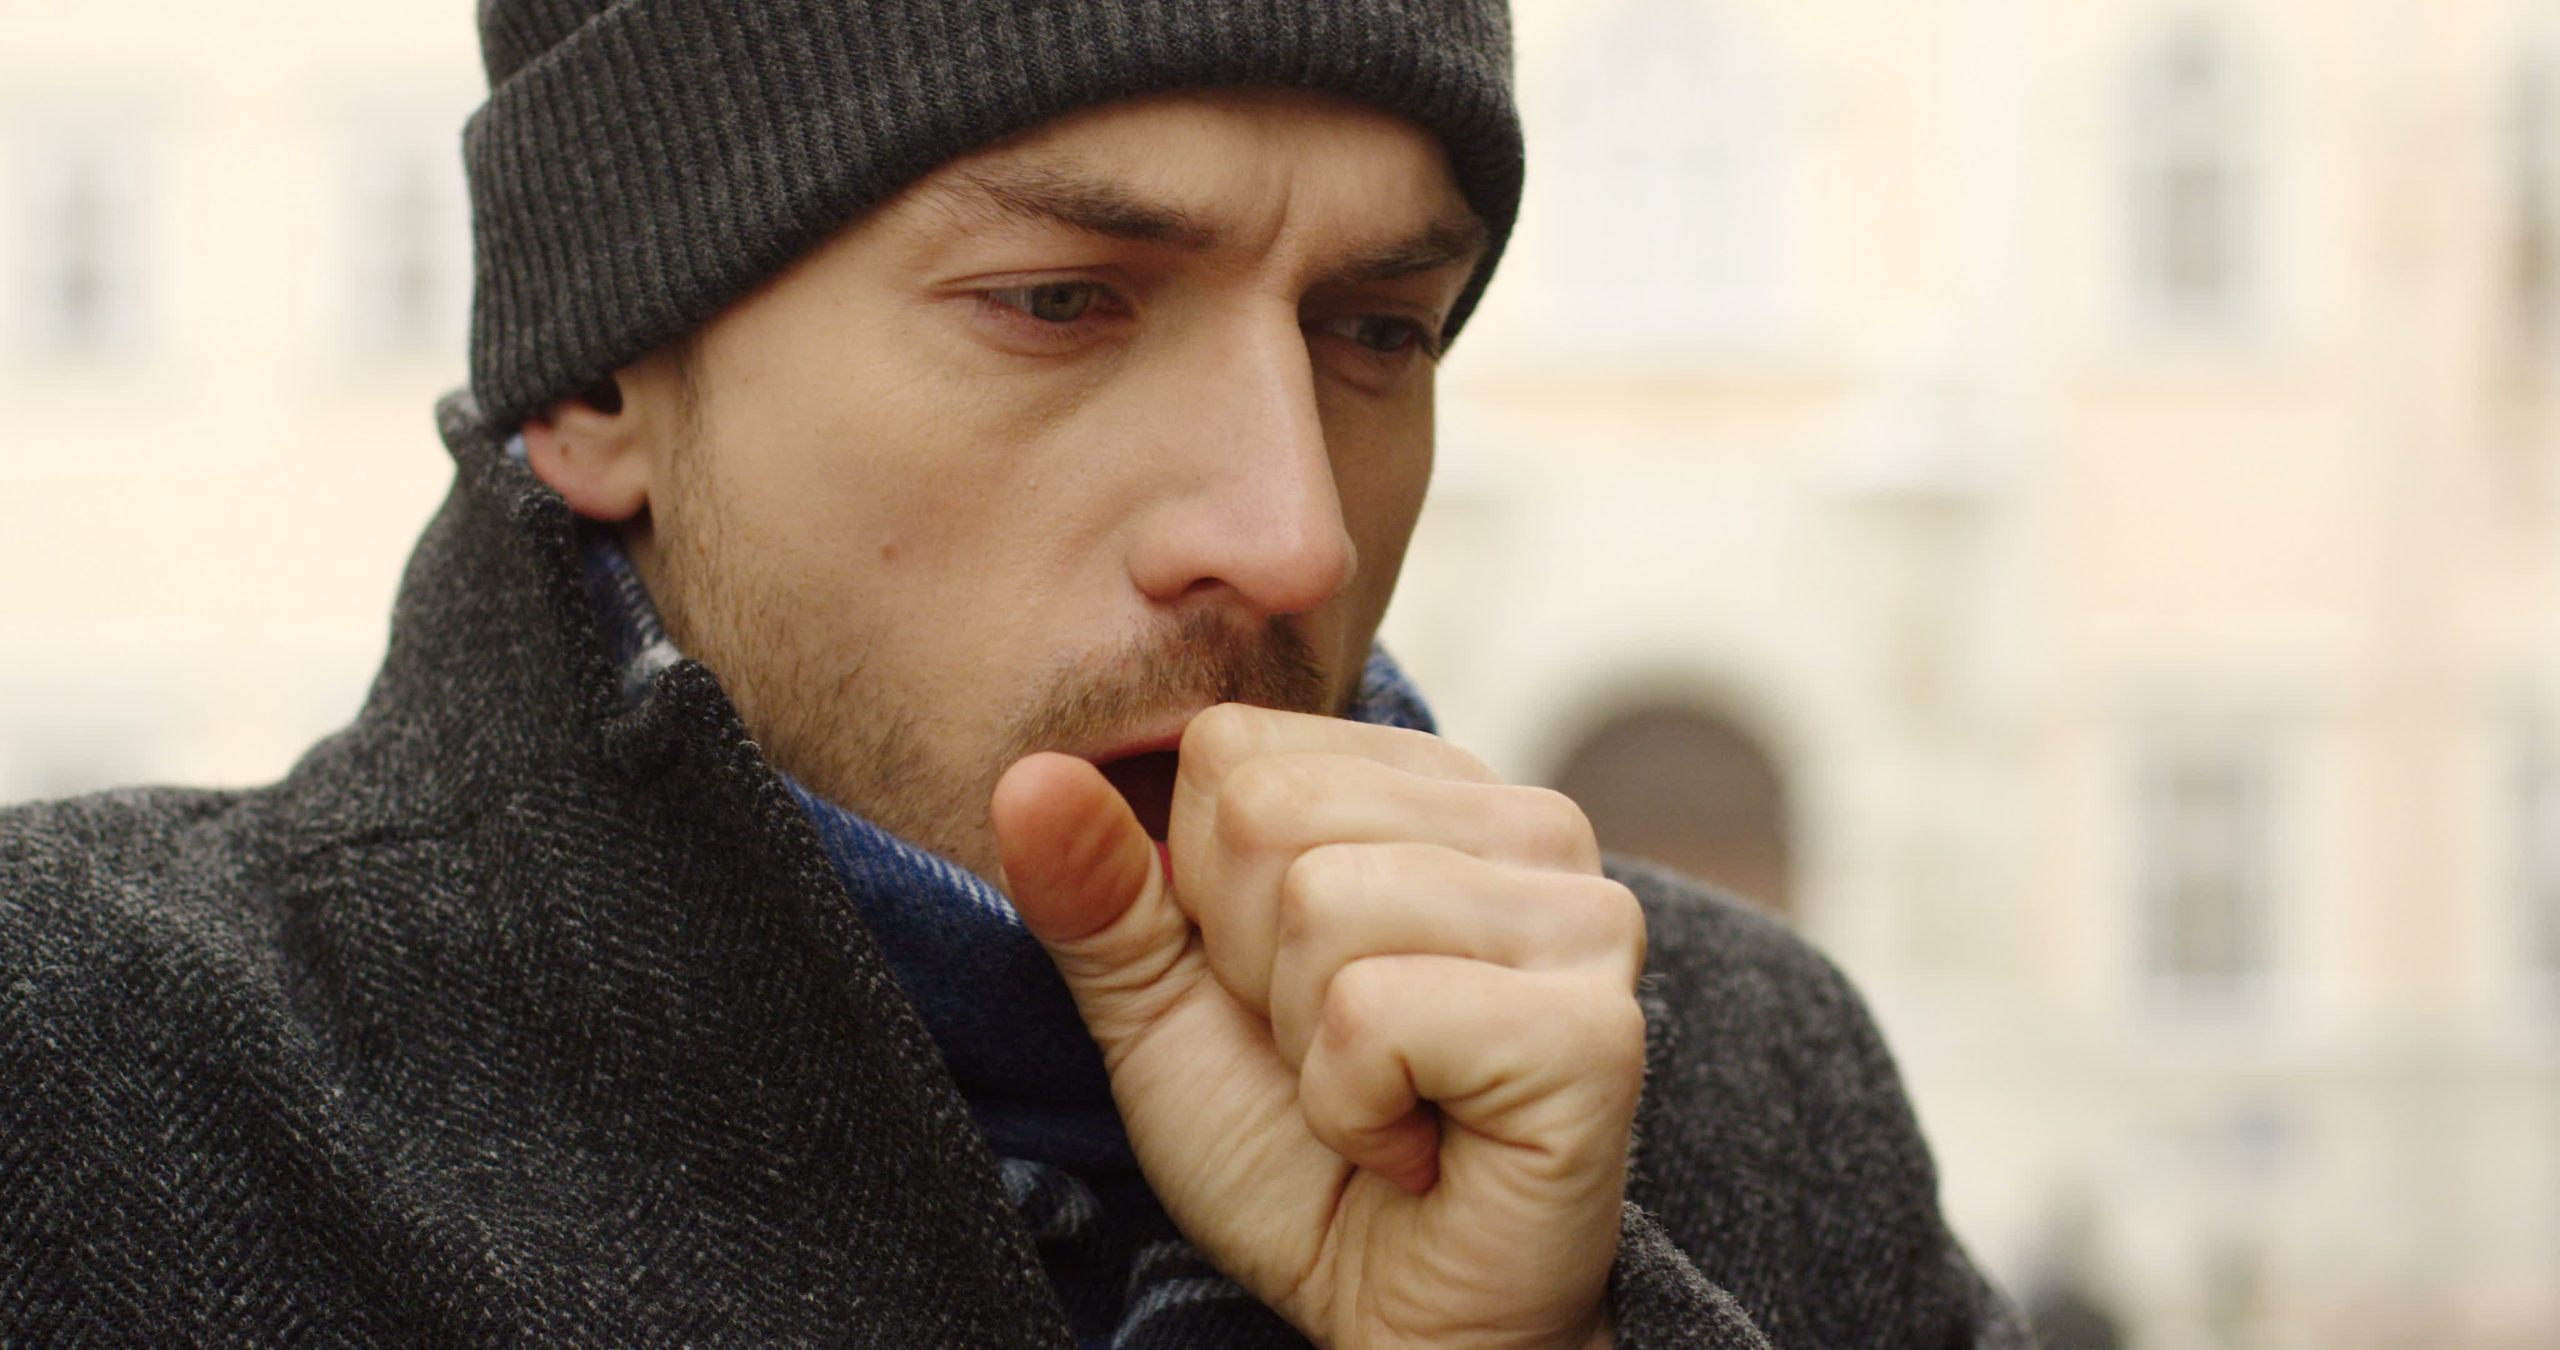 white man in coat and hat coughing into his hand